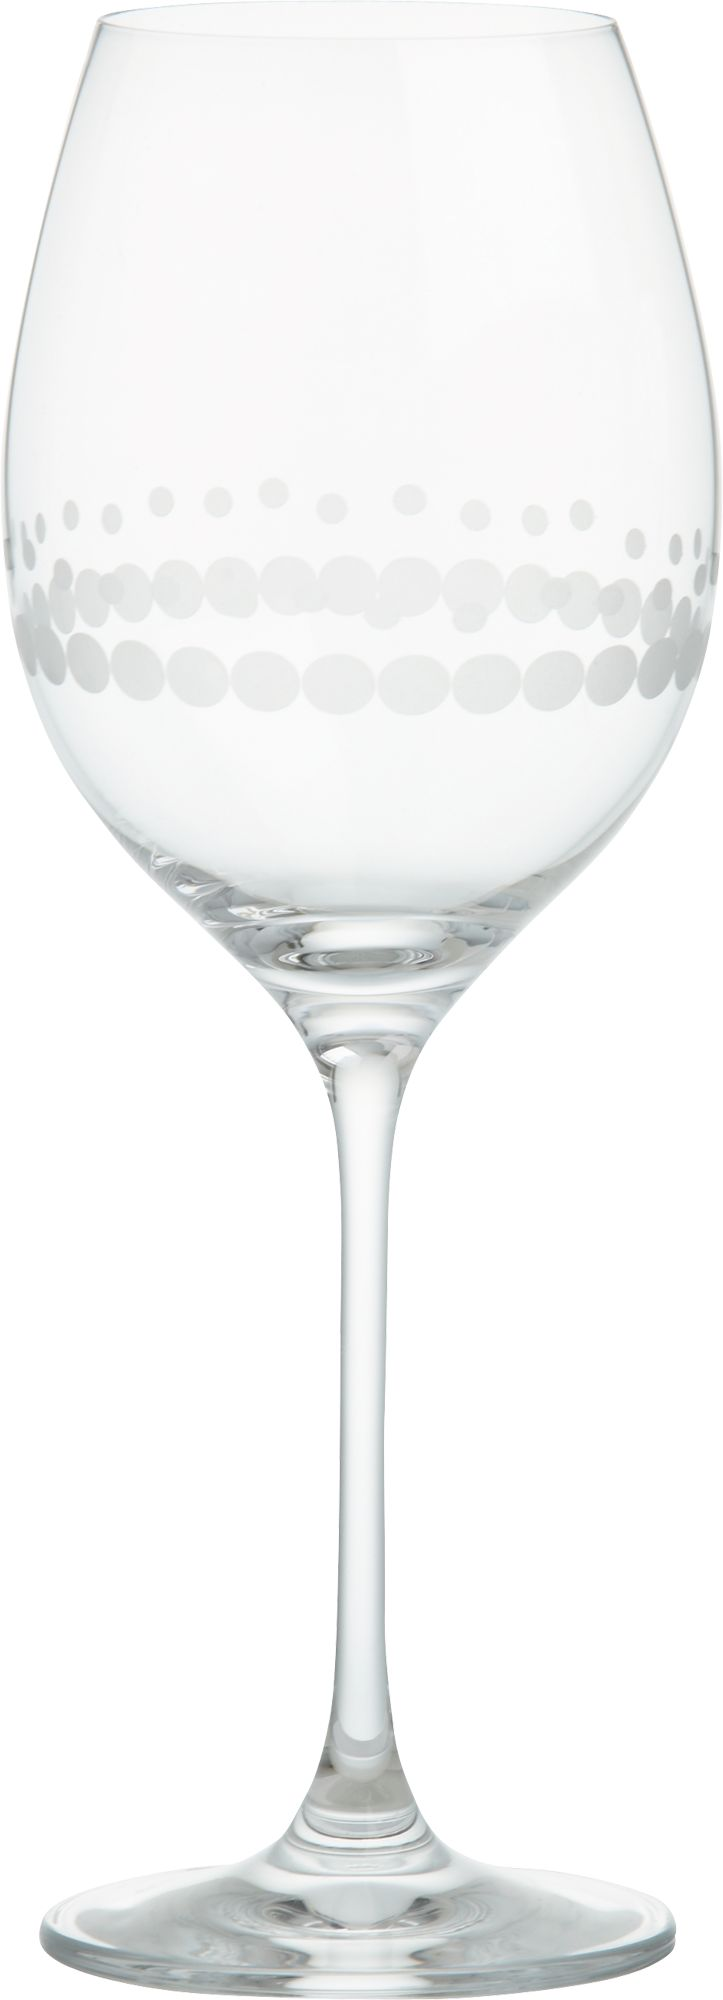 Livi White Wine Glass